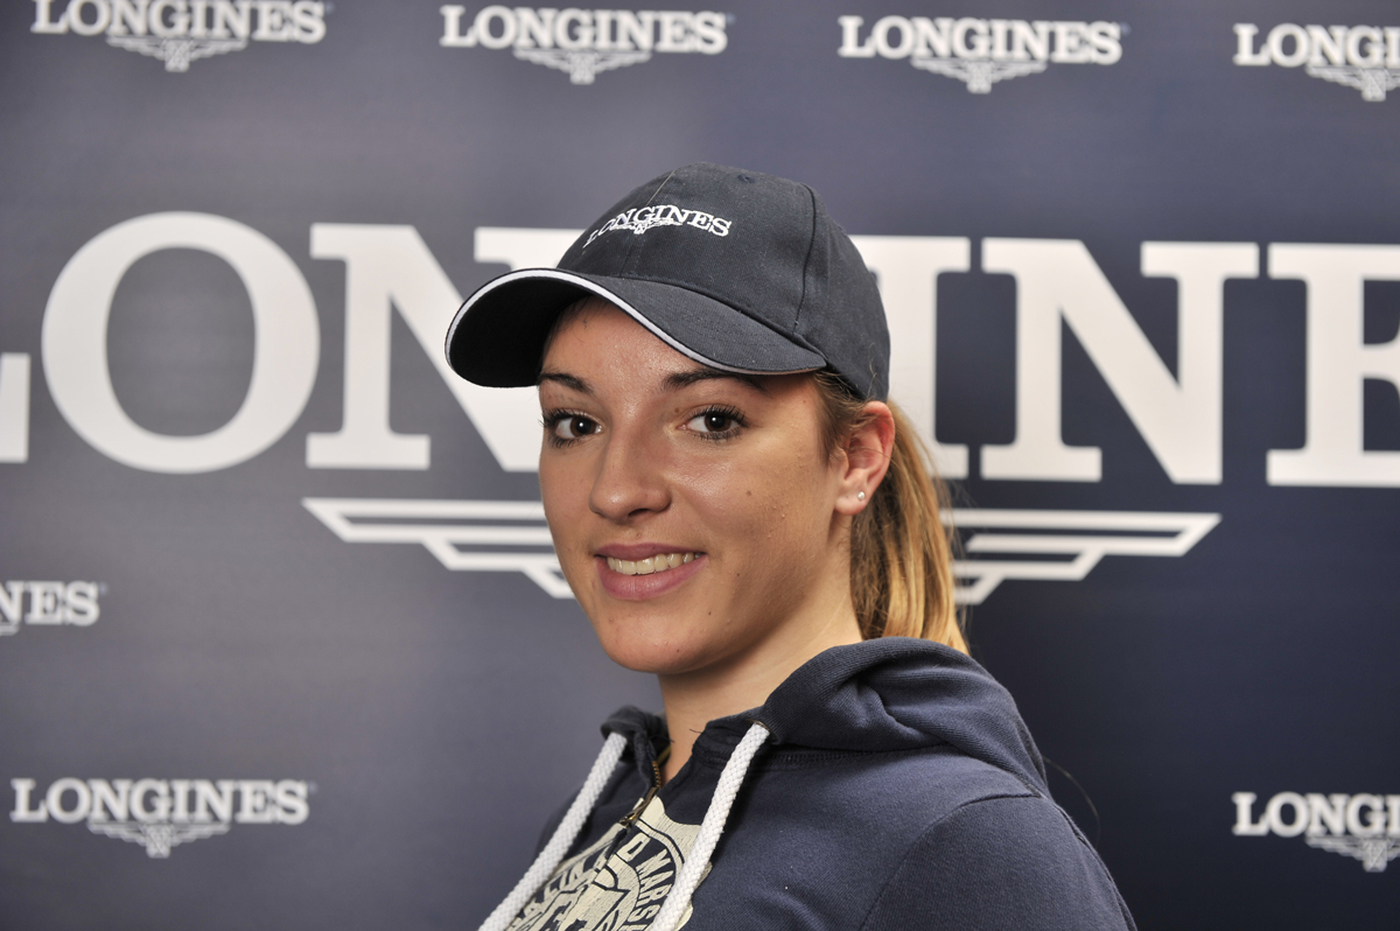 Longines Alpine Skiing Event: Second edition of the Longines Future Ski Champions – A successful 100% female competition in Val d'Isère 10